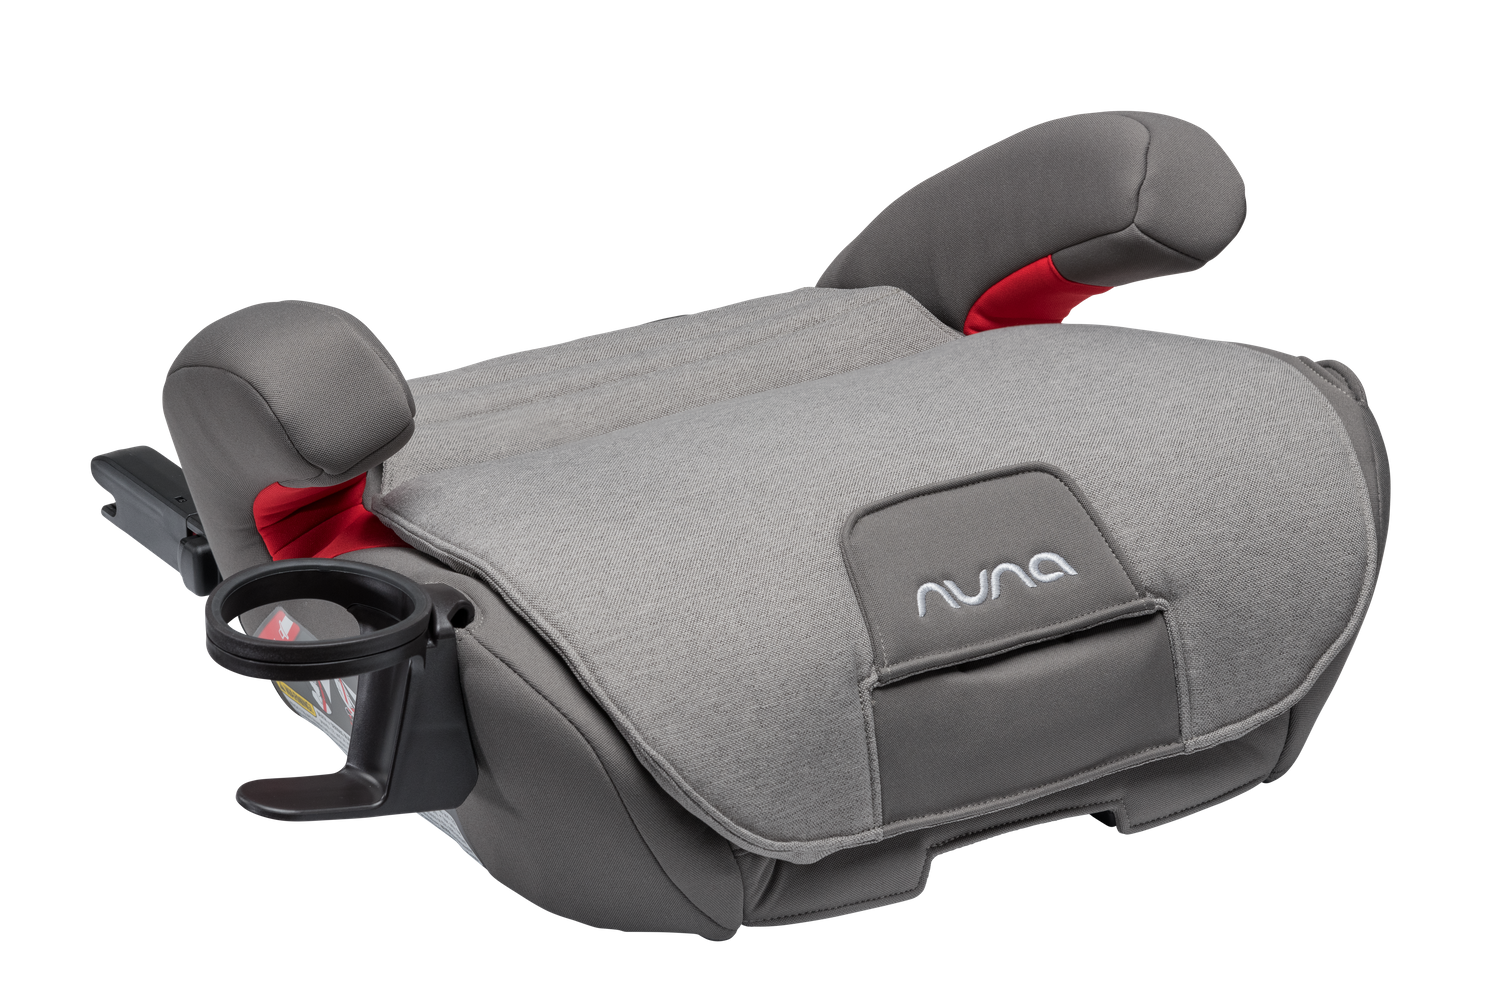 NUNA AACE 2-in-1 Booster Car Seat Overhead No Back - Granite | ANB Baby